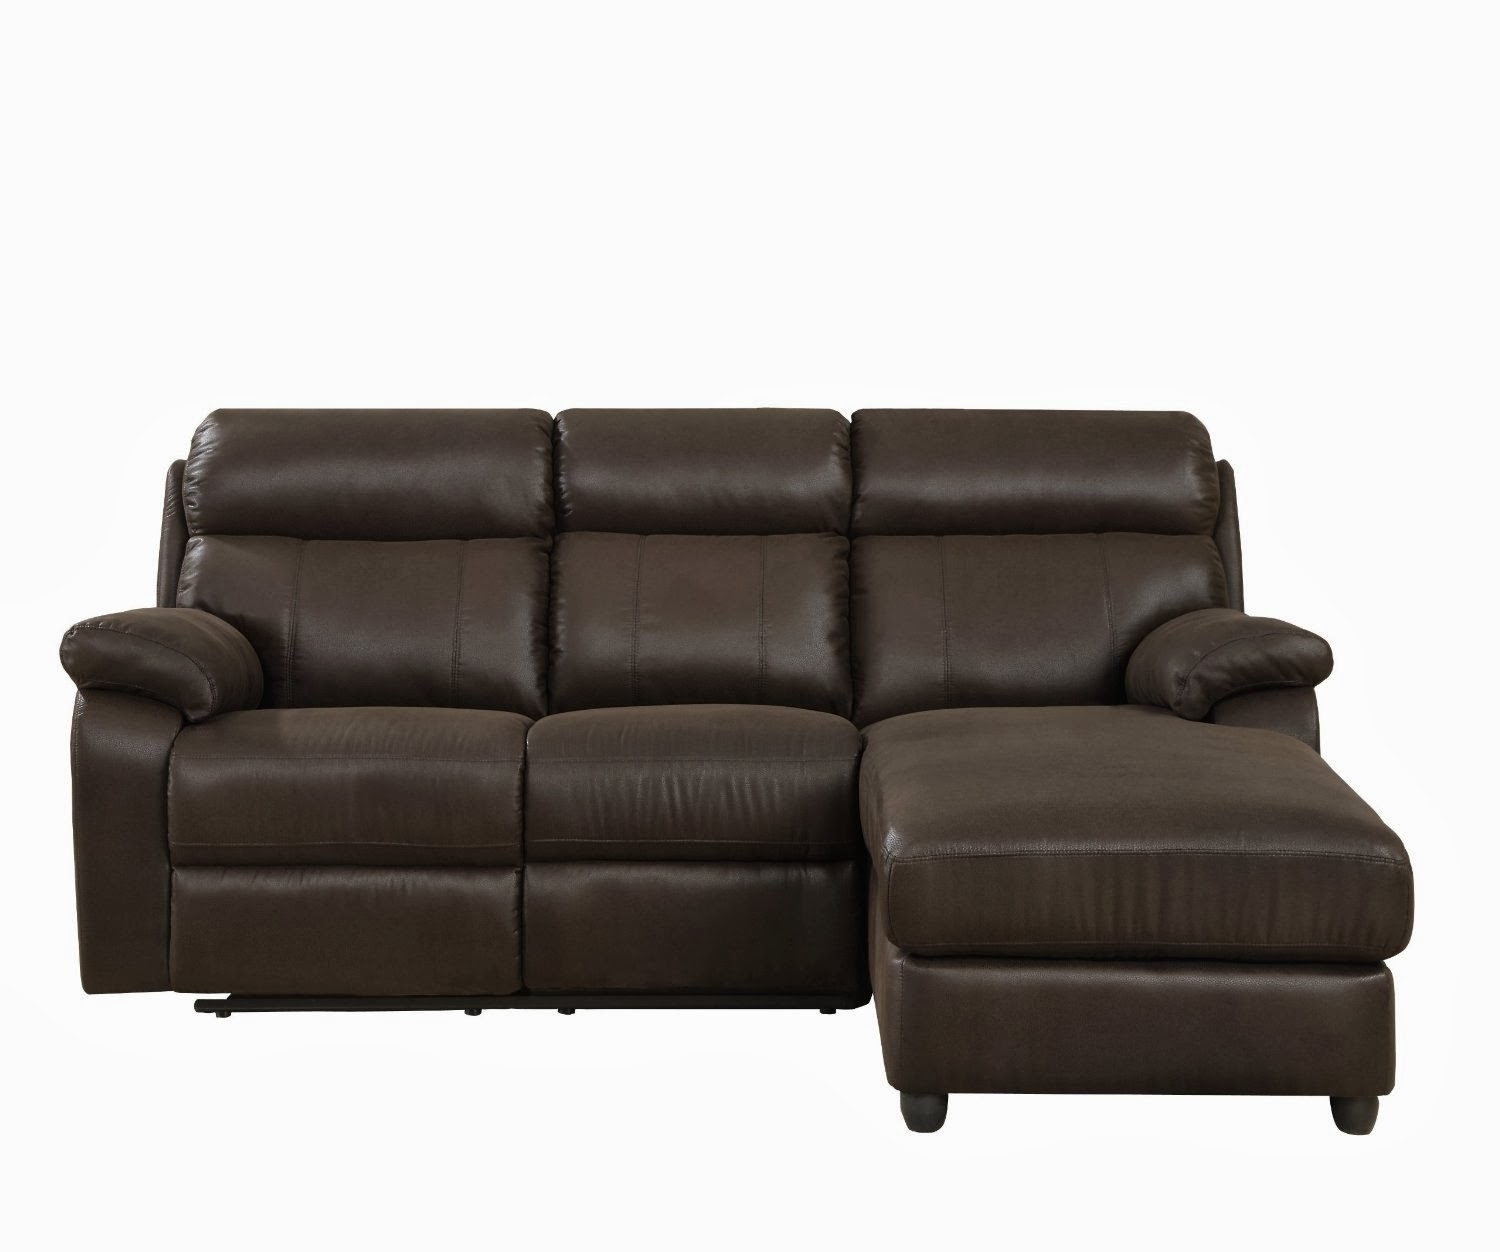 Small High Back Leather Sectional Sofa With Chaise For 3 – Decofurnish For Sectional Sofas With High Backs (Image 8 of 10)